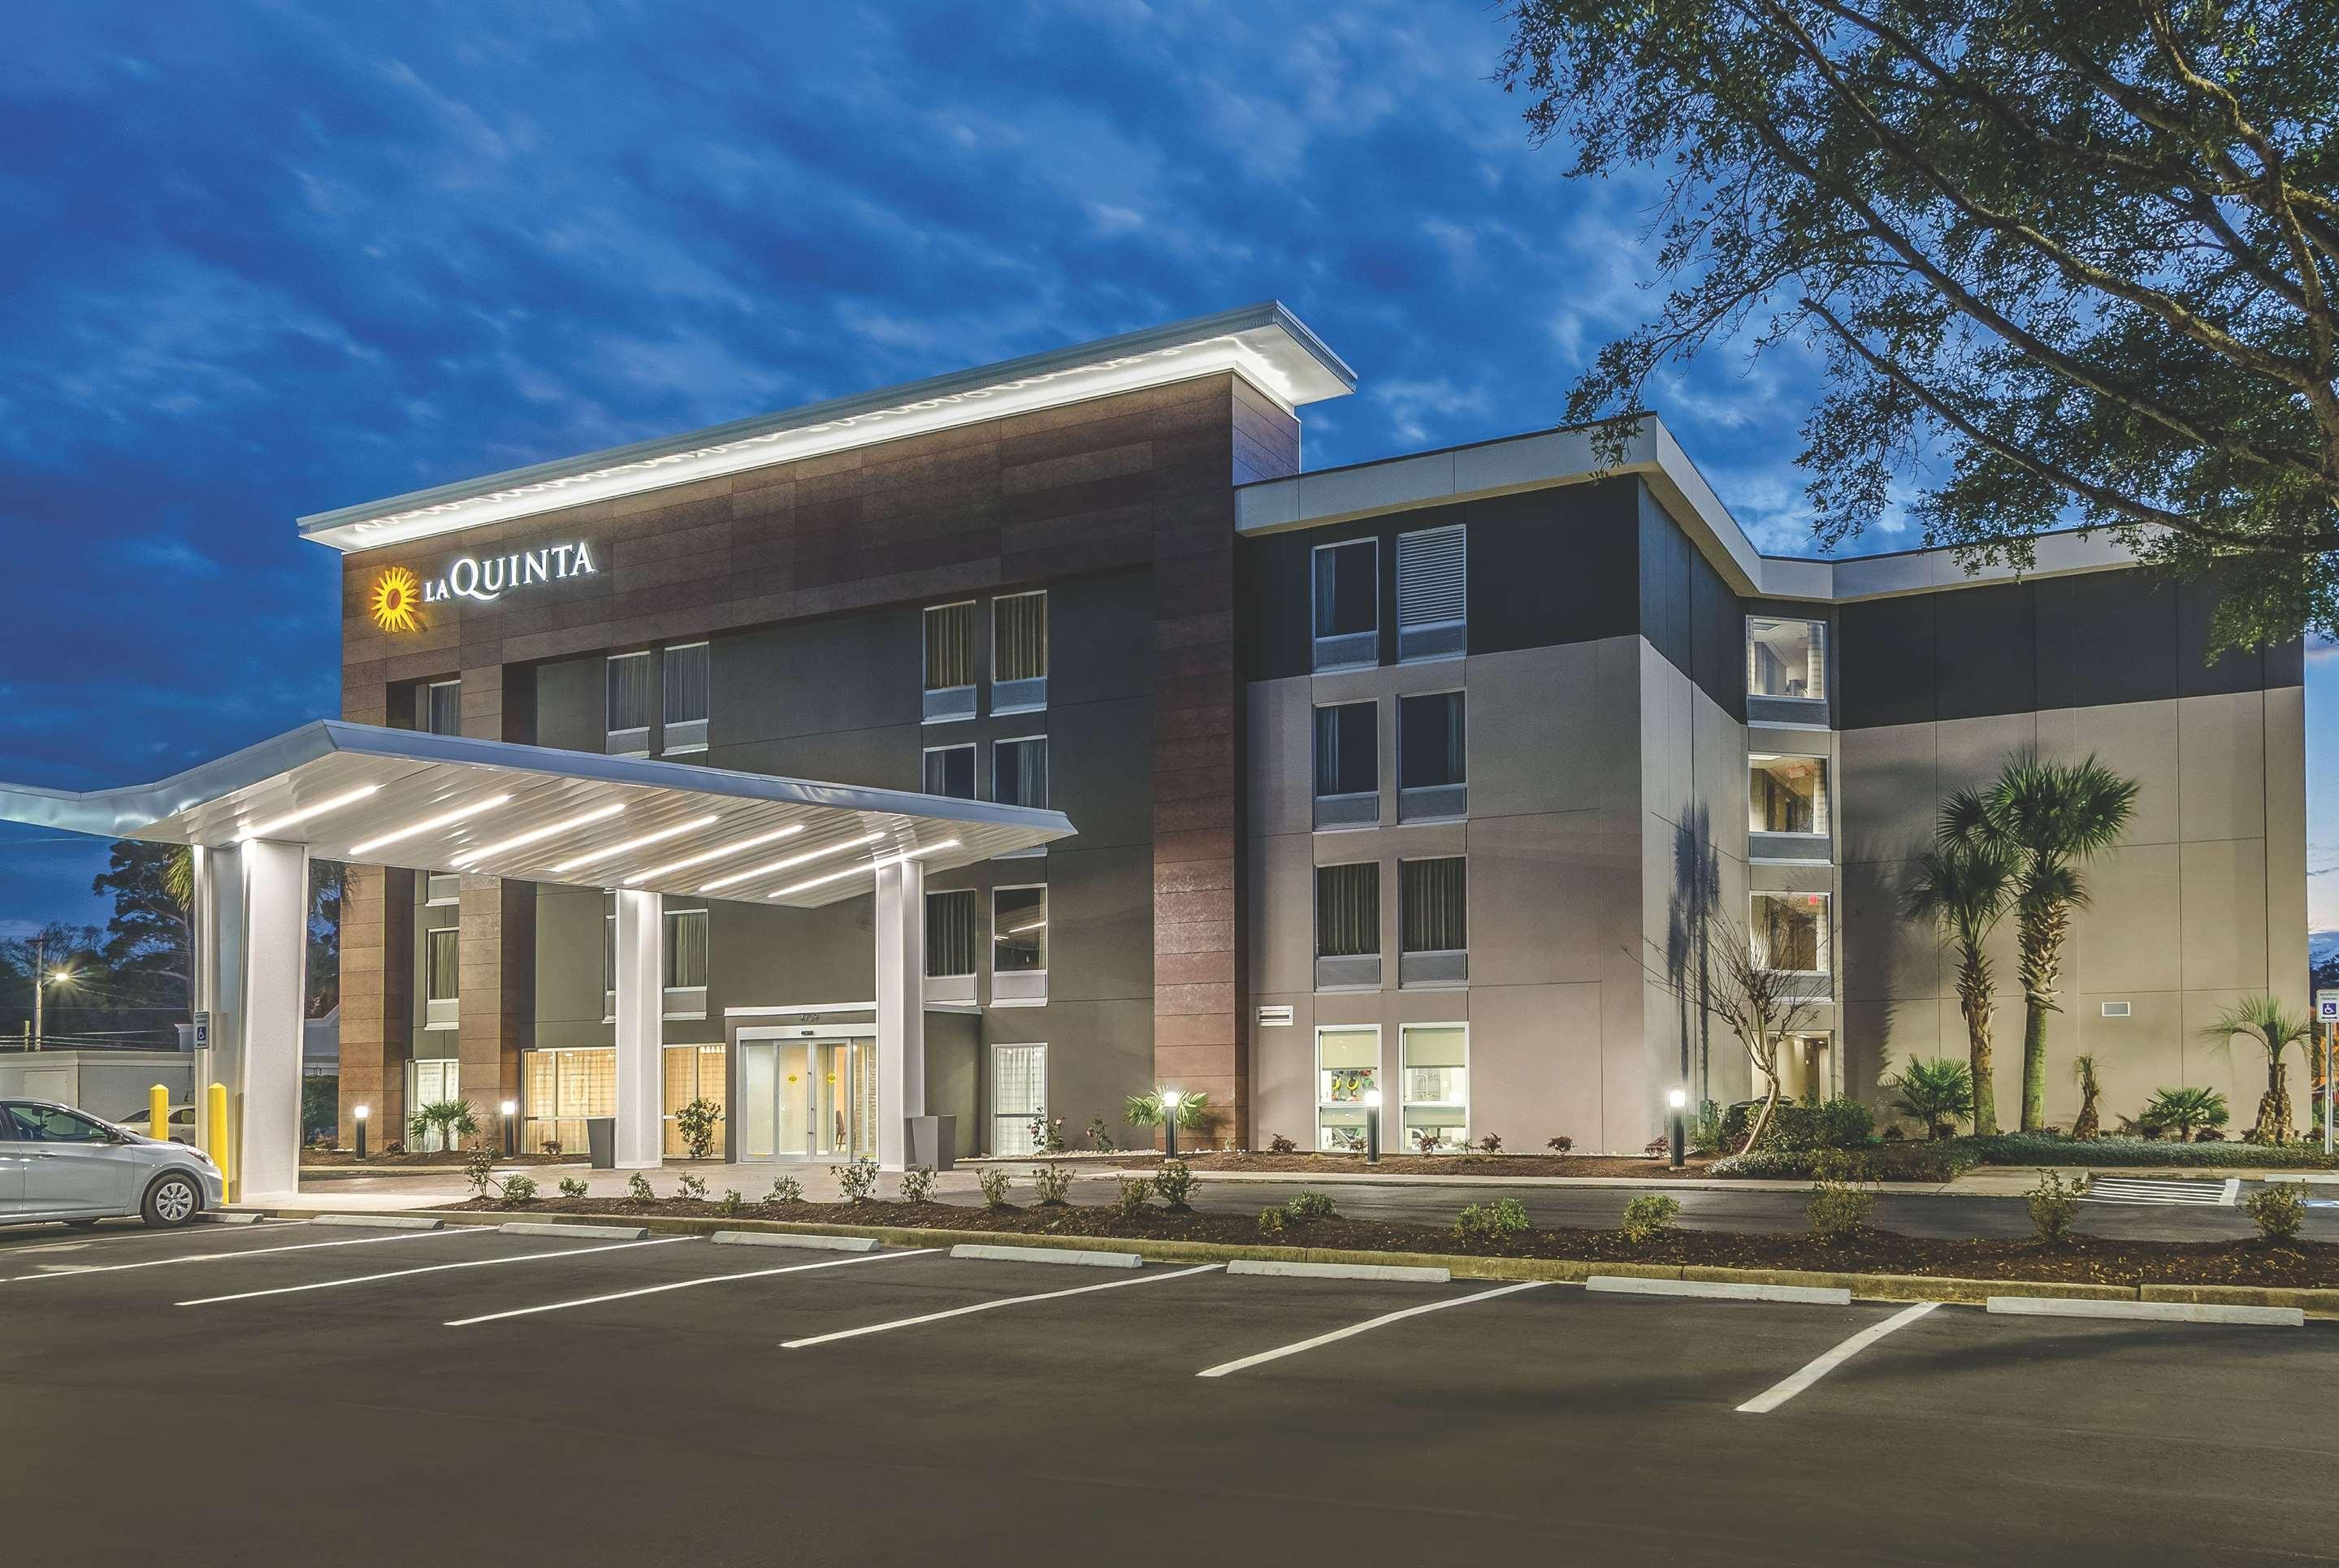 La Quinta Inn & Suites by Wyndham Myrtle Beach - N Kings Hwy